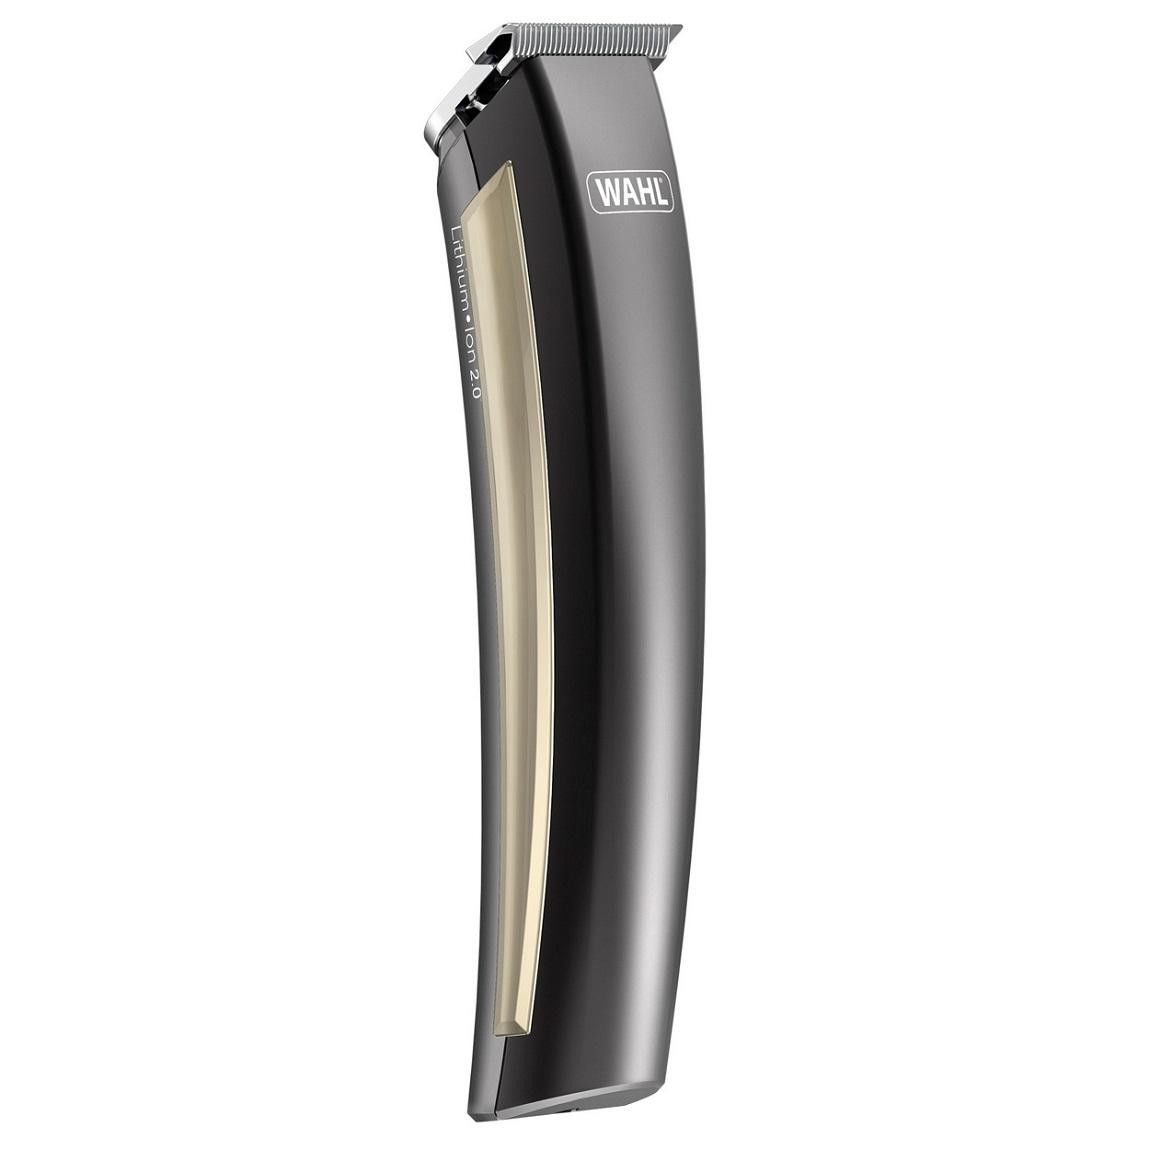 wahl 9884 800 lithium blitz mens 3 in 1 facial beard trimmer cordless shaver electrical deals. Black Bedroom Furniture Sets. Home Design Ideas